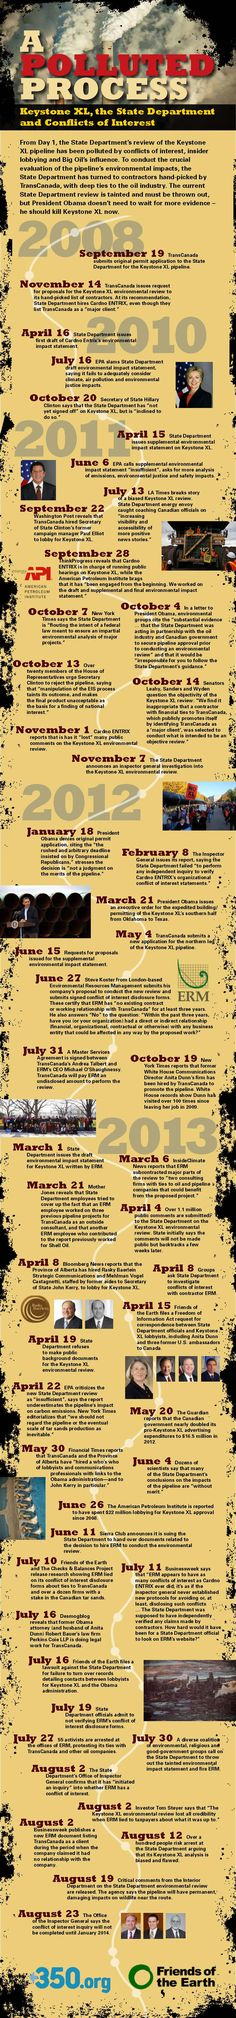 A polluted process: Keystone XL, the State Department and conflicts of interest - See more at: http://www.foe.org/news/blog/2013-09-a-polluted-process-keystone-xl-the-state-department#sthash.GXbOM4rJ.dpuf